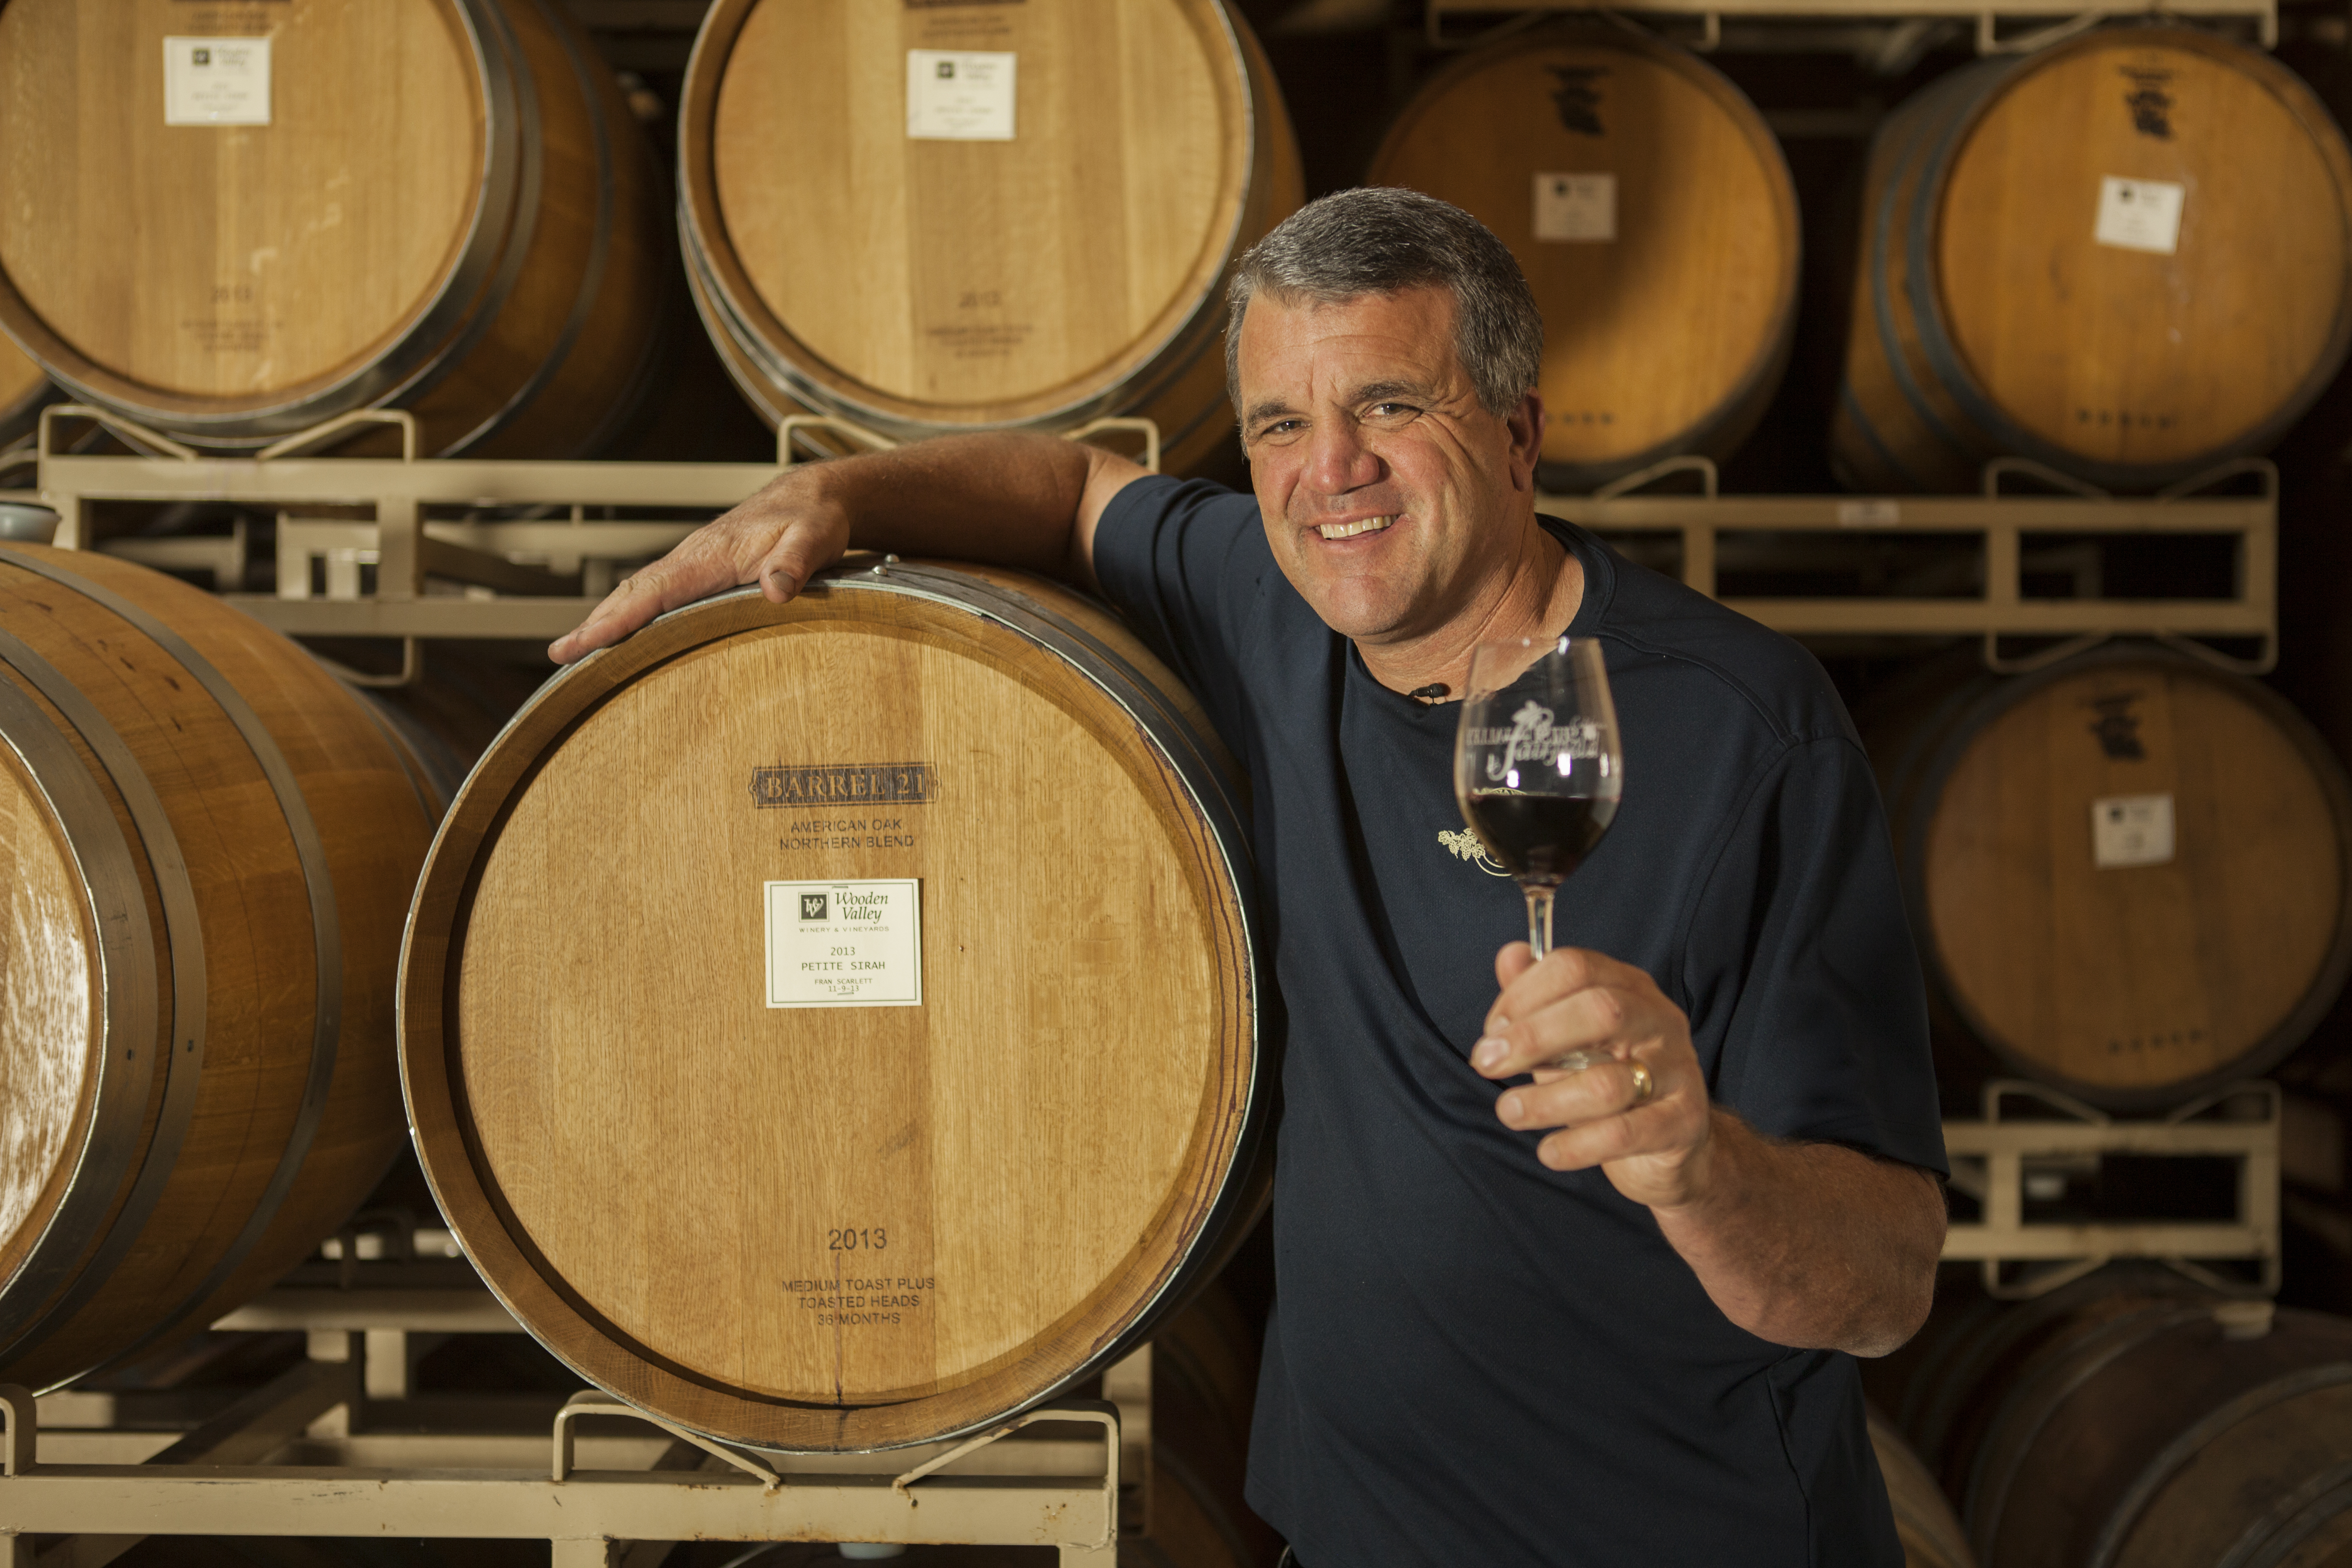 Ron Lanza of Wooden Valley Winery